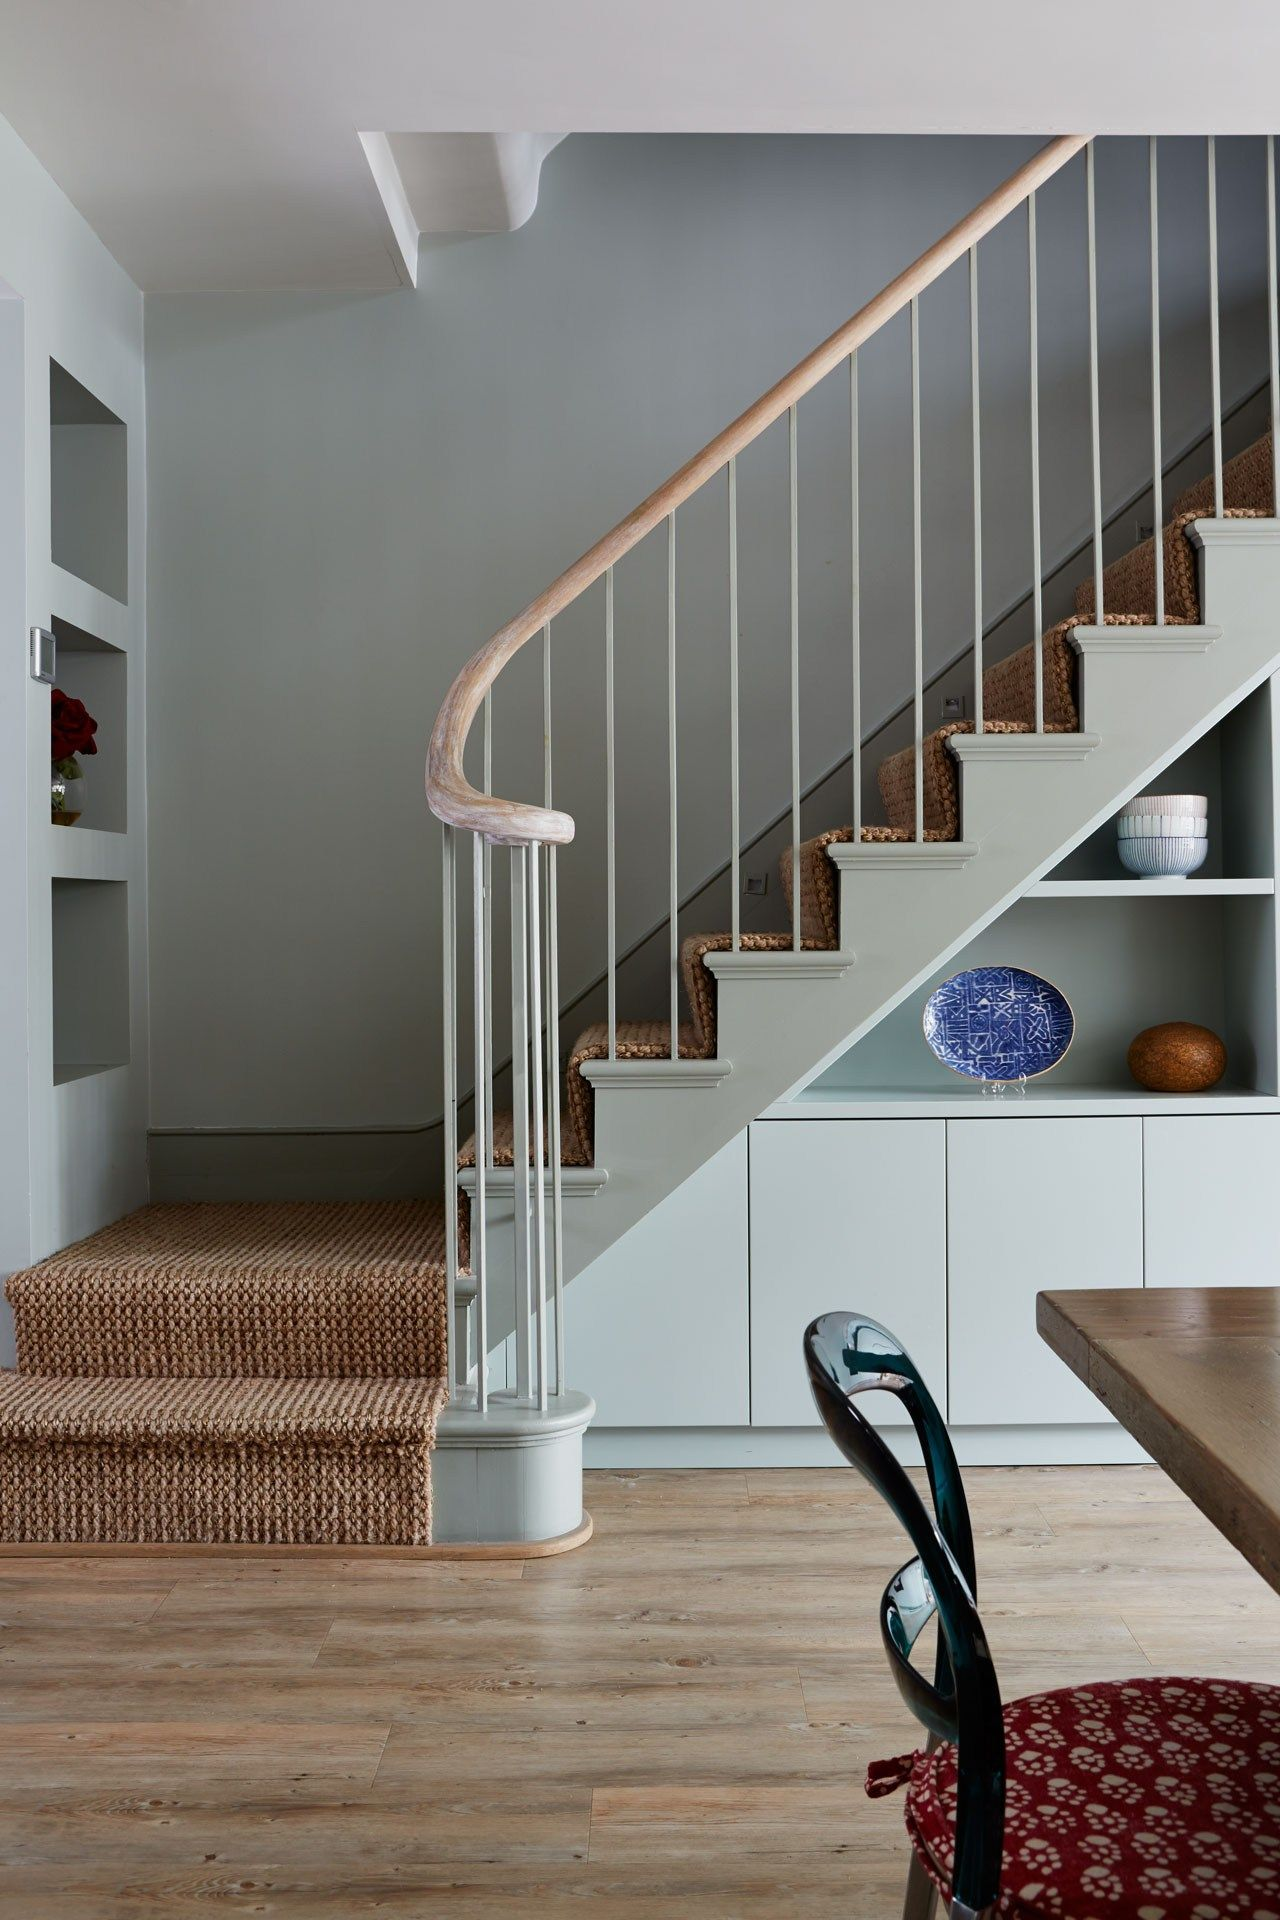 Small room ideas   Interior stairs, Stairs design, Home ...